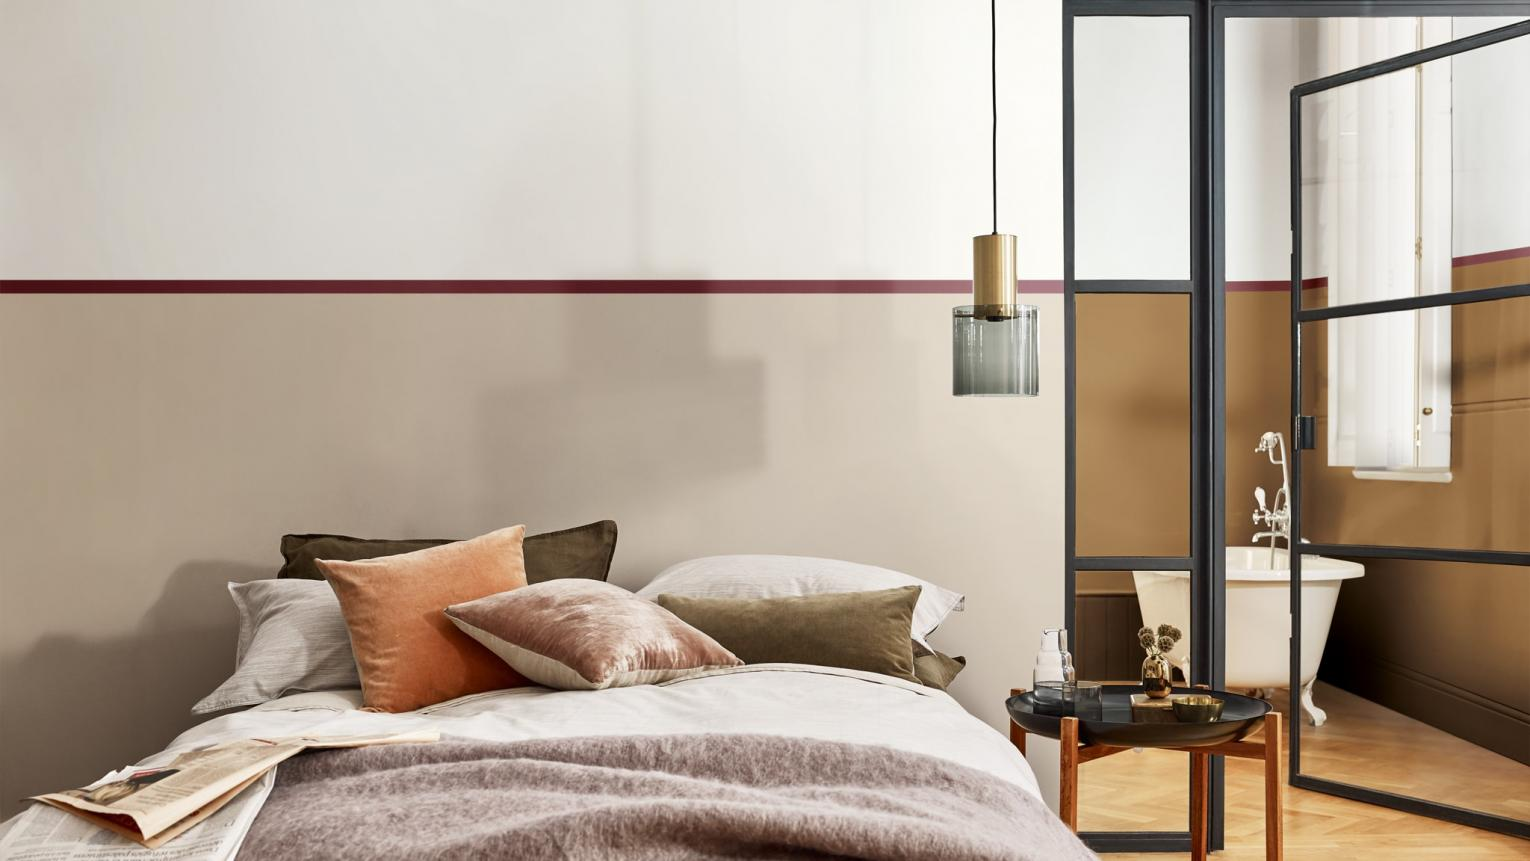 Deco-Paints-Colour-Futures-Colour-of-the-Year-2019-A-place-to-think-Bedroom-Inspiration-11